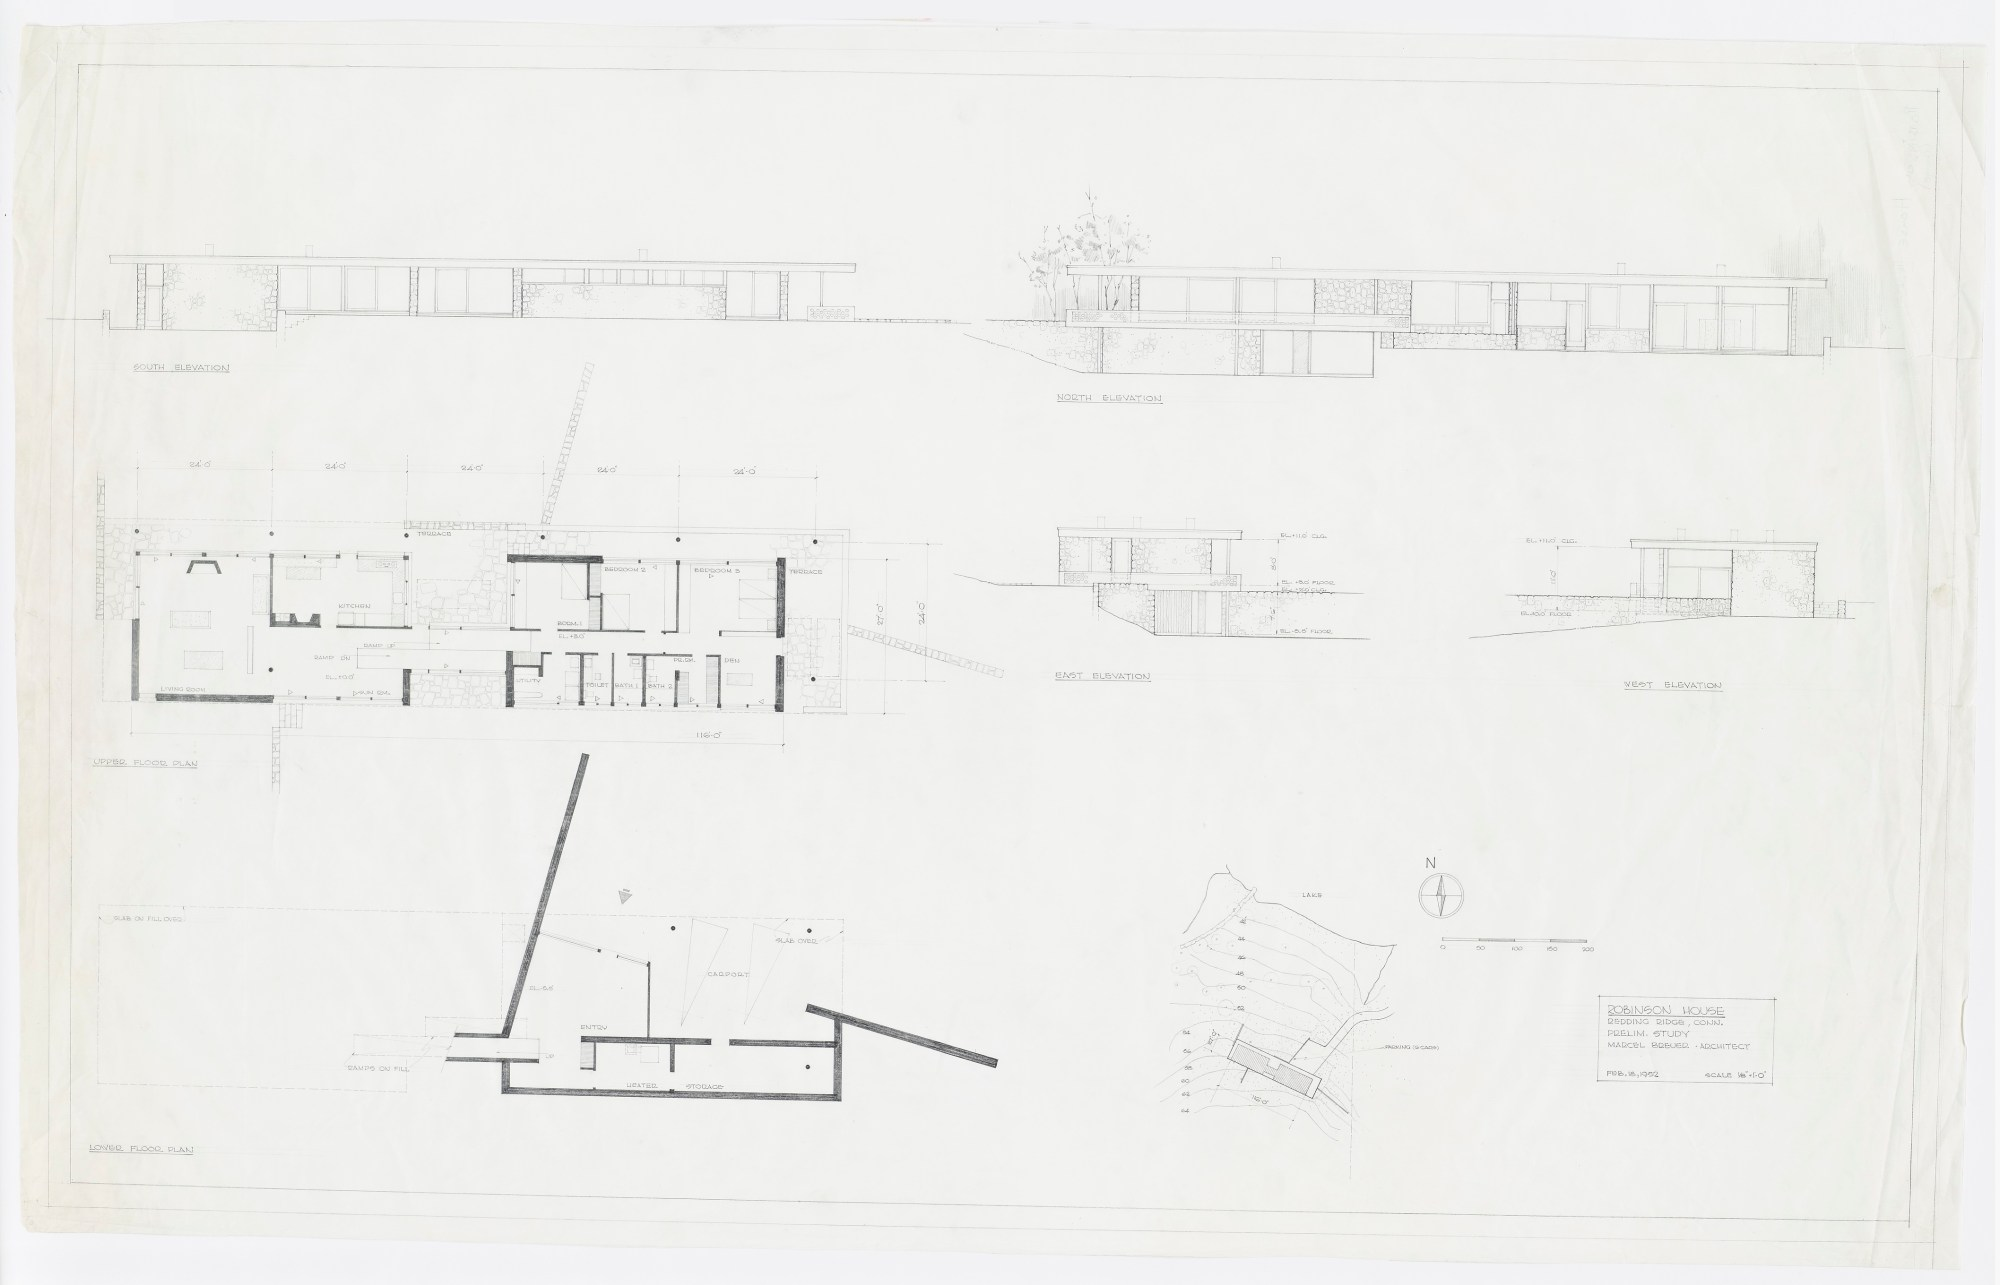 hight resolution of robinson george house project type residential years 1951 1951